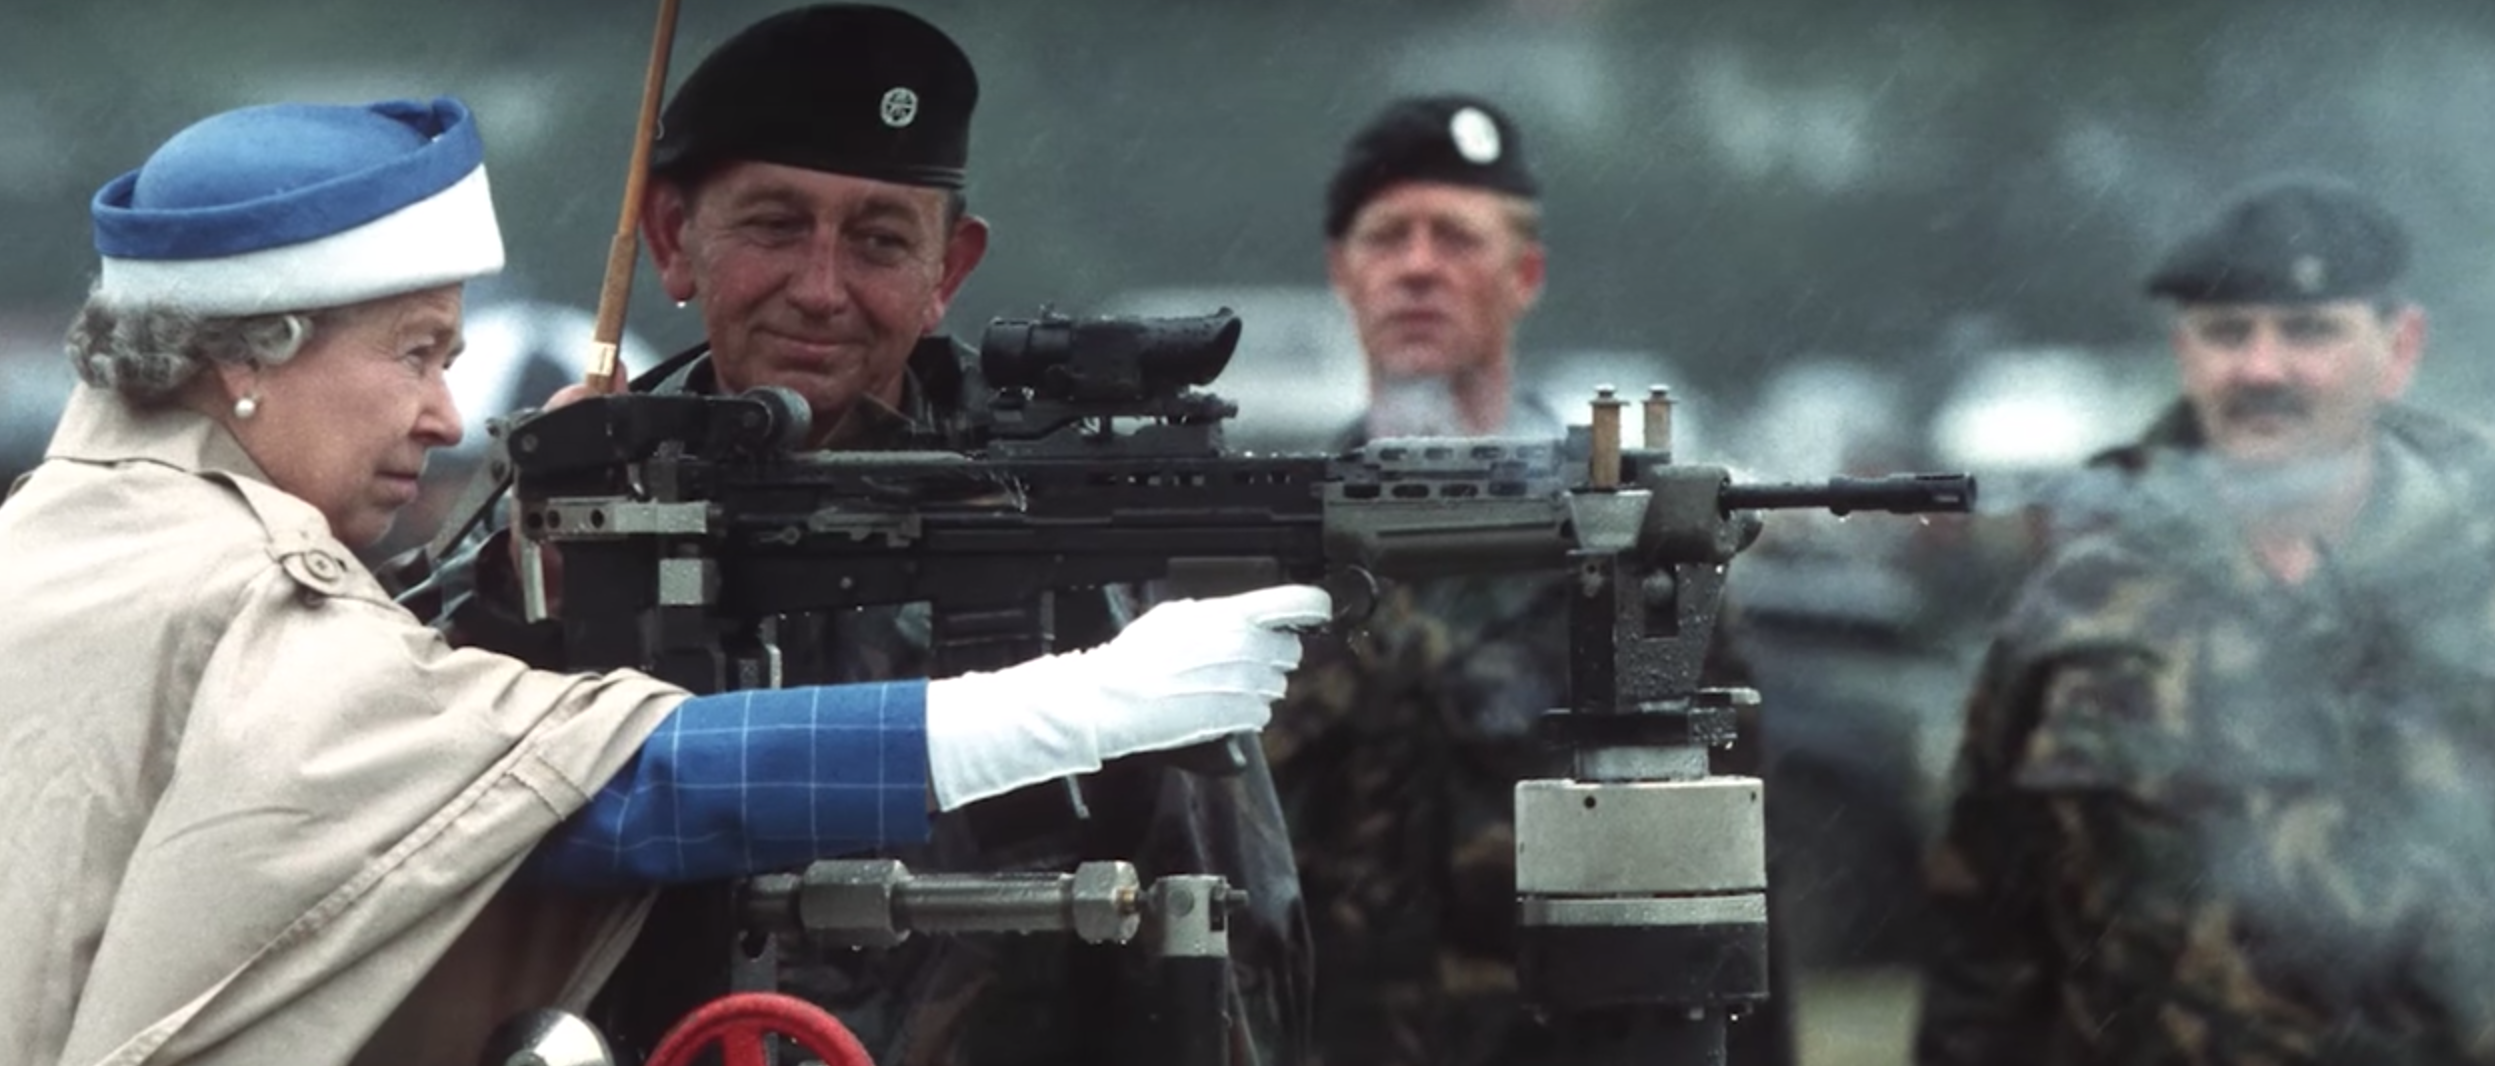 During WWII the then Princess Elizabeth learned to fire a machine gun. Photo from Youtube Screenshot.